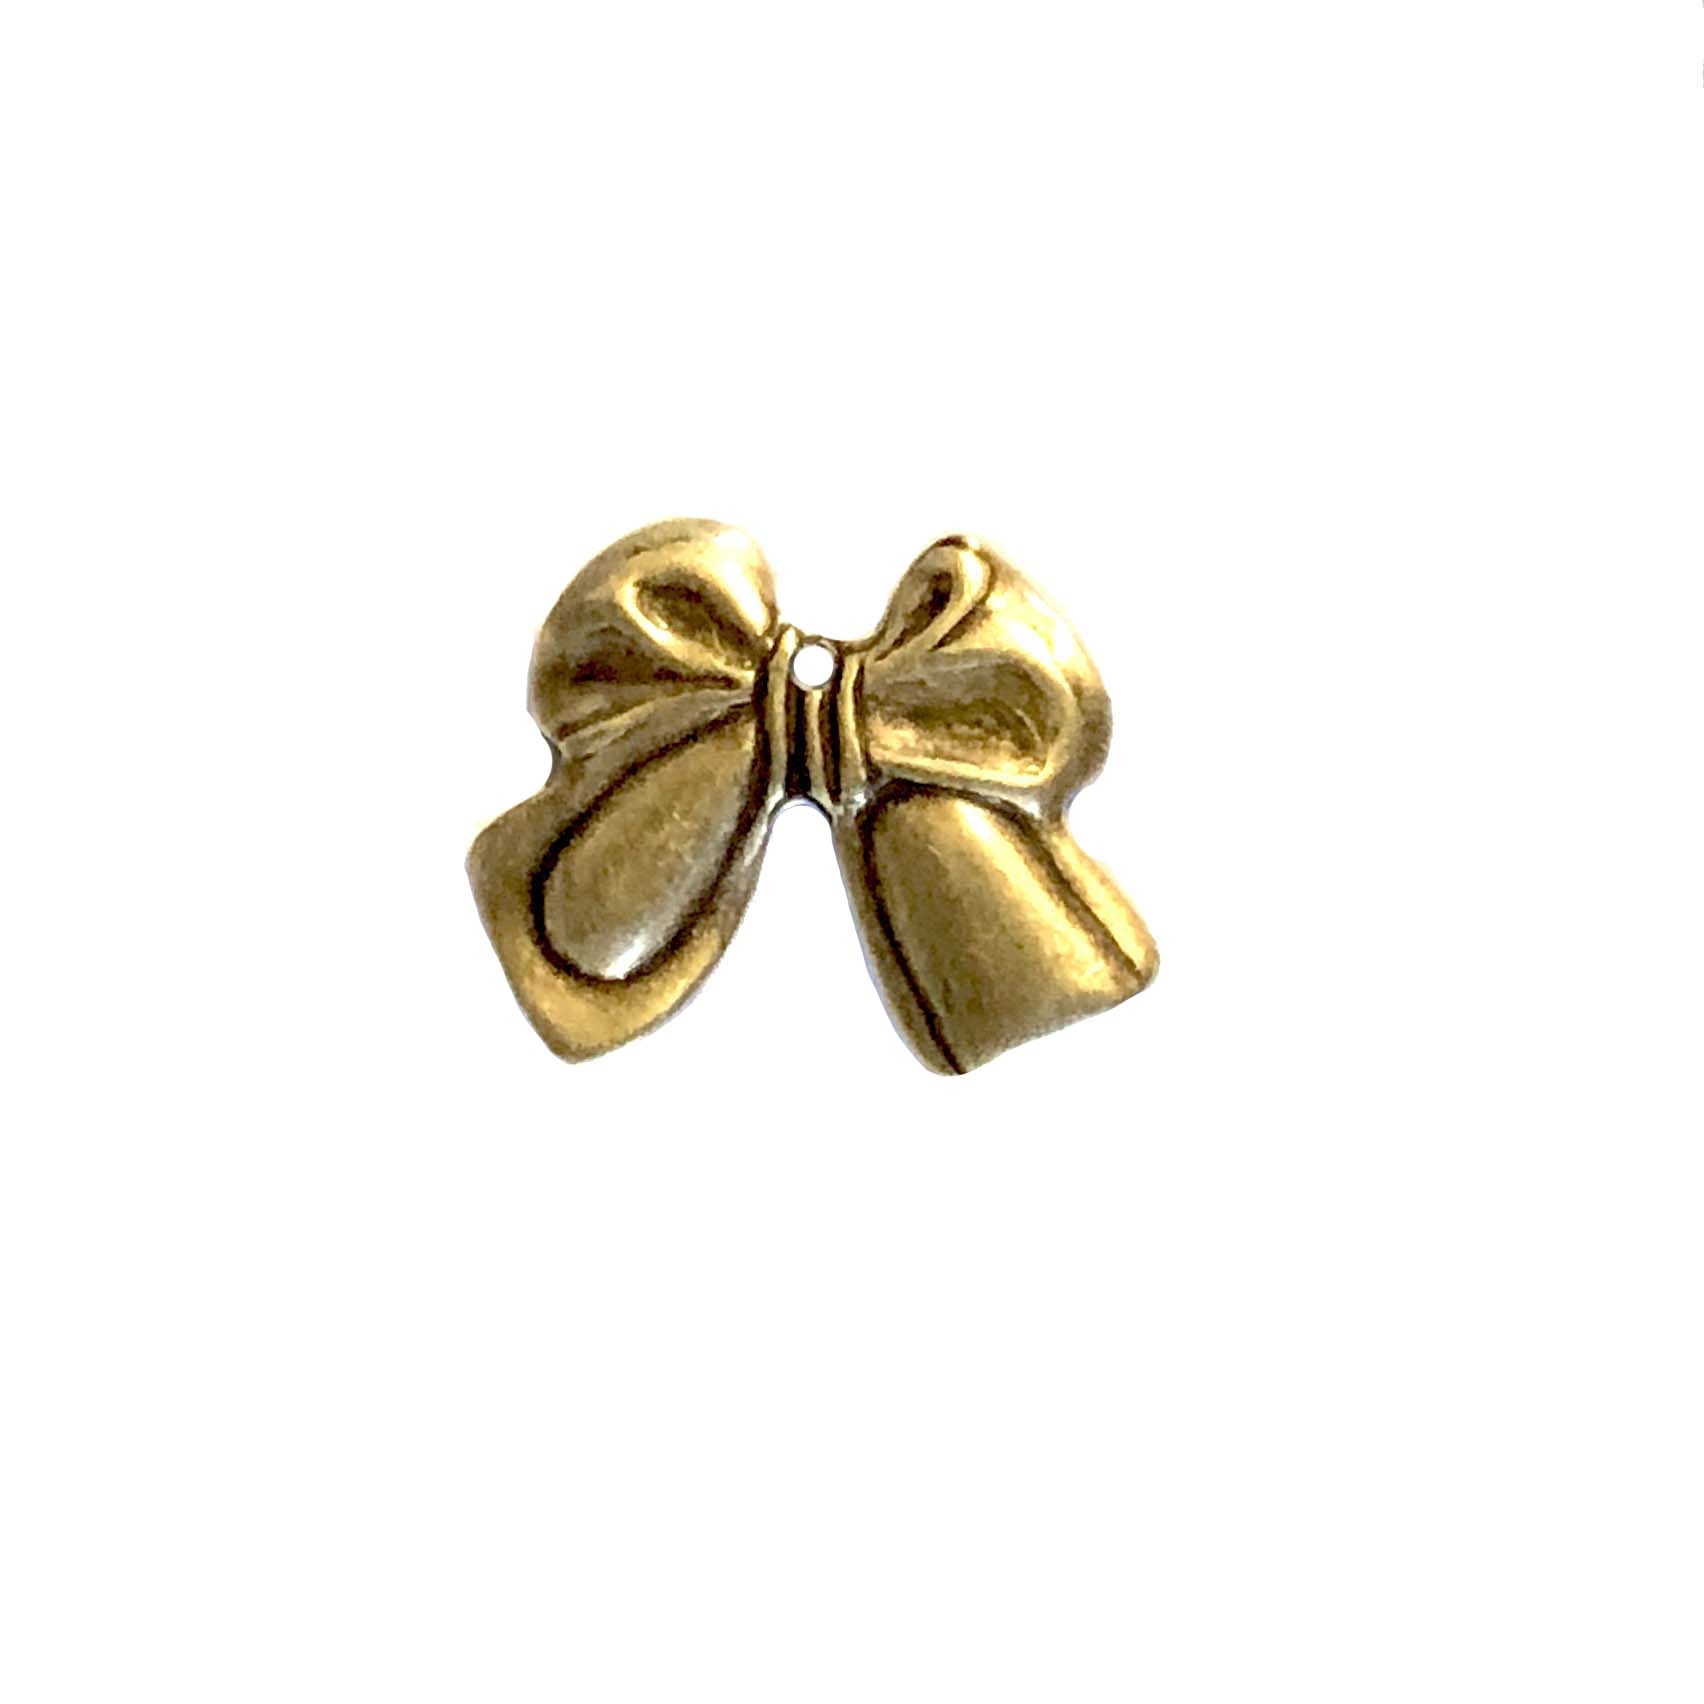 brass bow stamping, brass ox, antique brass, brass bow, bow charm, bow stampings, bow pendants, brass stamping, us made, nickel free, 16x20mm, ribbon bow, brass, stamping, jewelry making, jewelry supplies, vintage supplies, jewelry findings, 09399